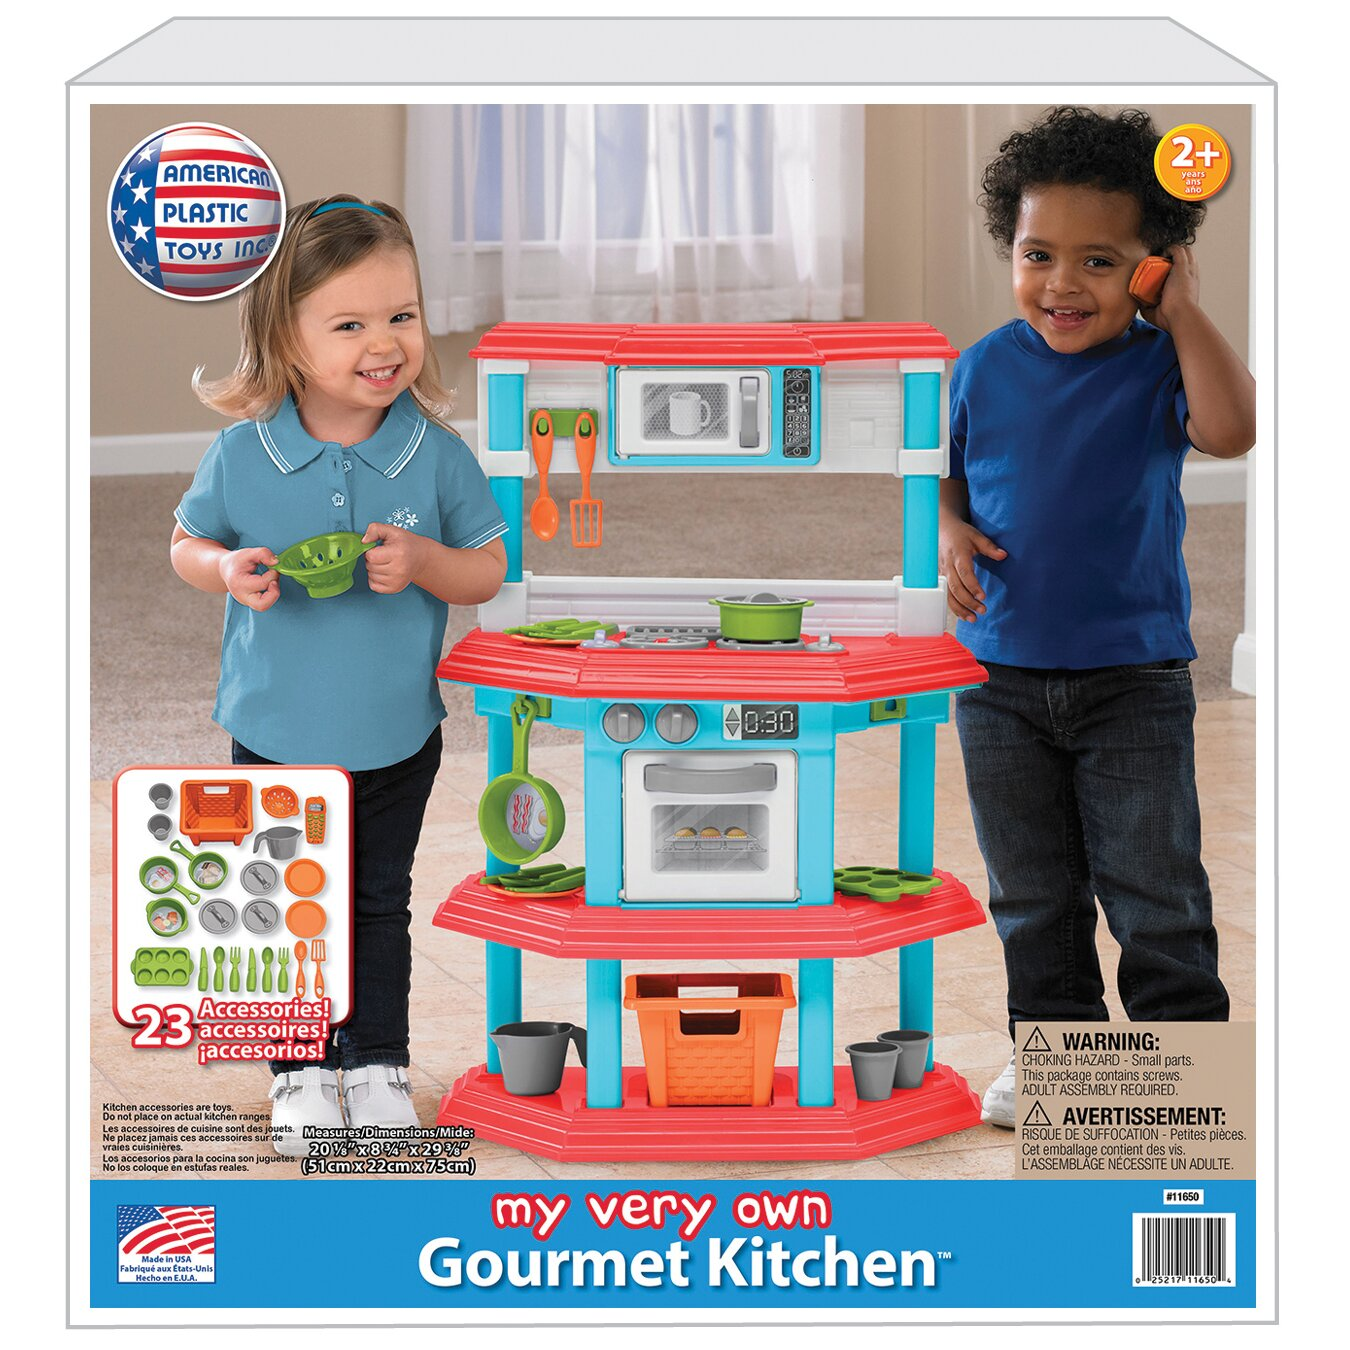 American plastic toys 23 piece my very own gourmet kitchen for Kitchen set plastic